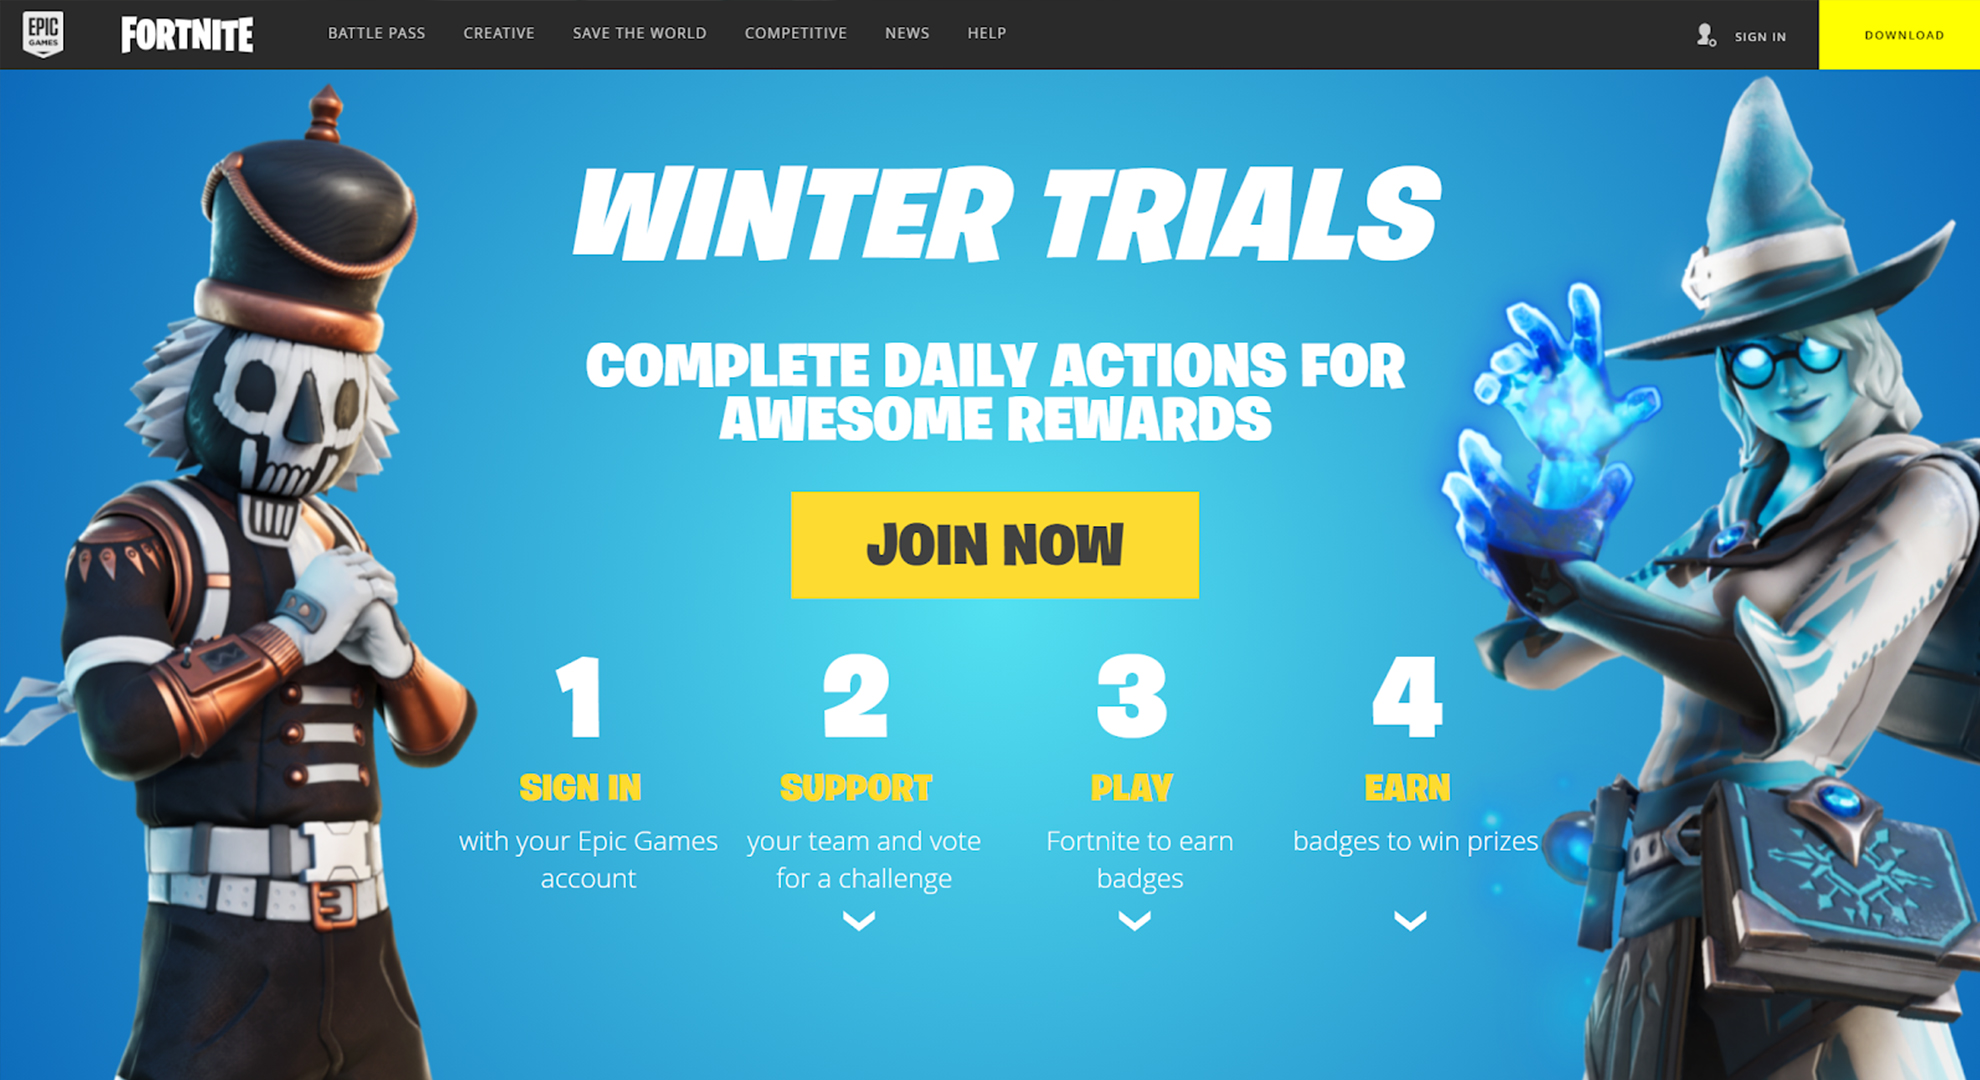 Fortnite Winter Trials Landing Page